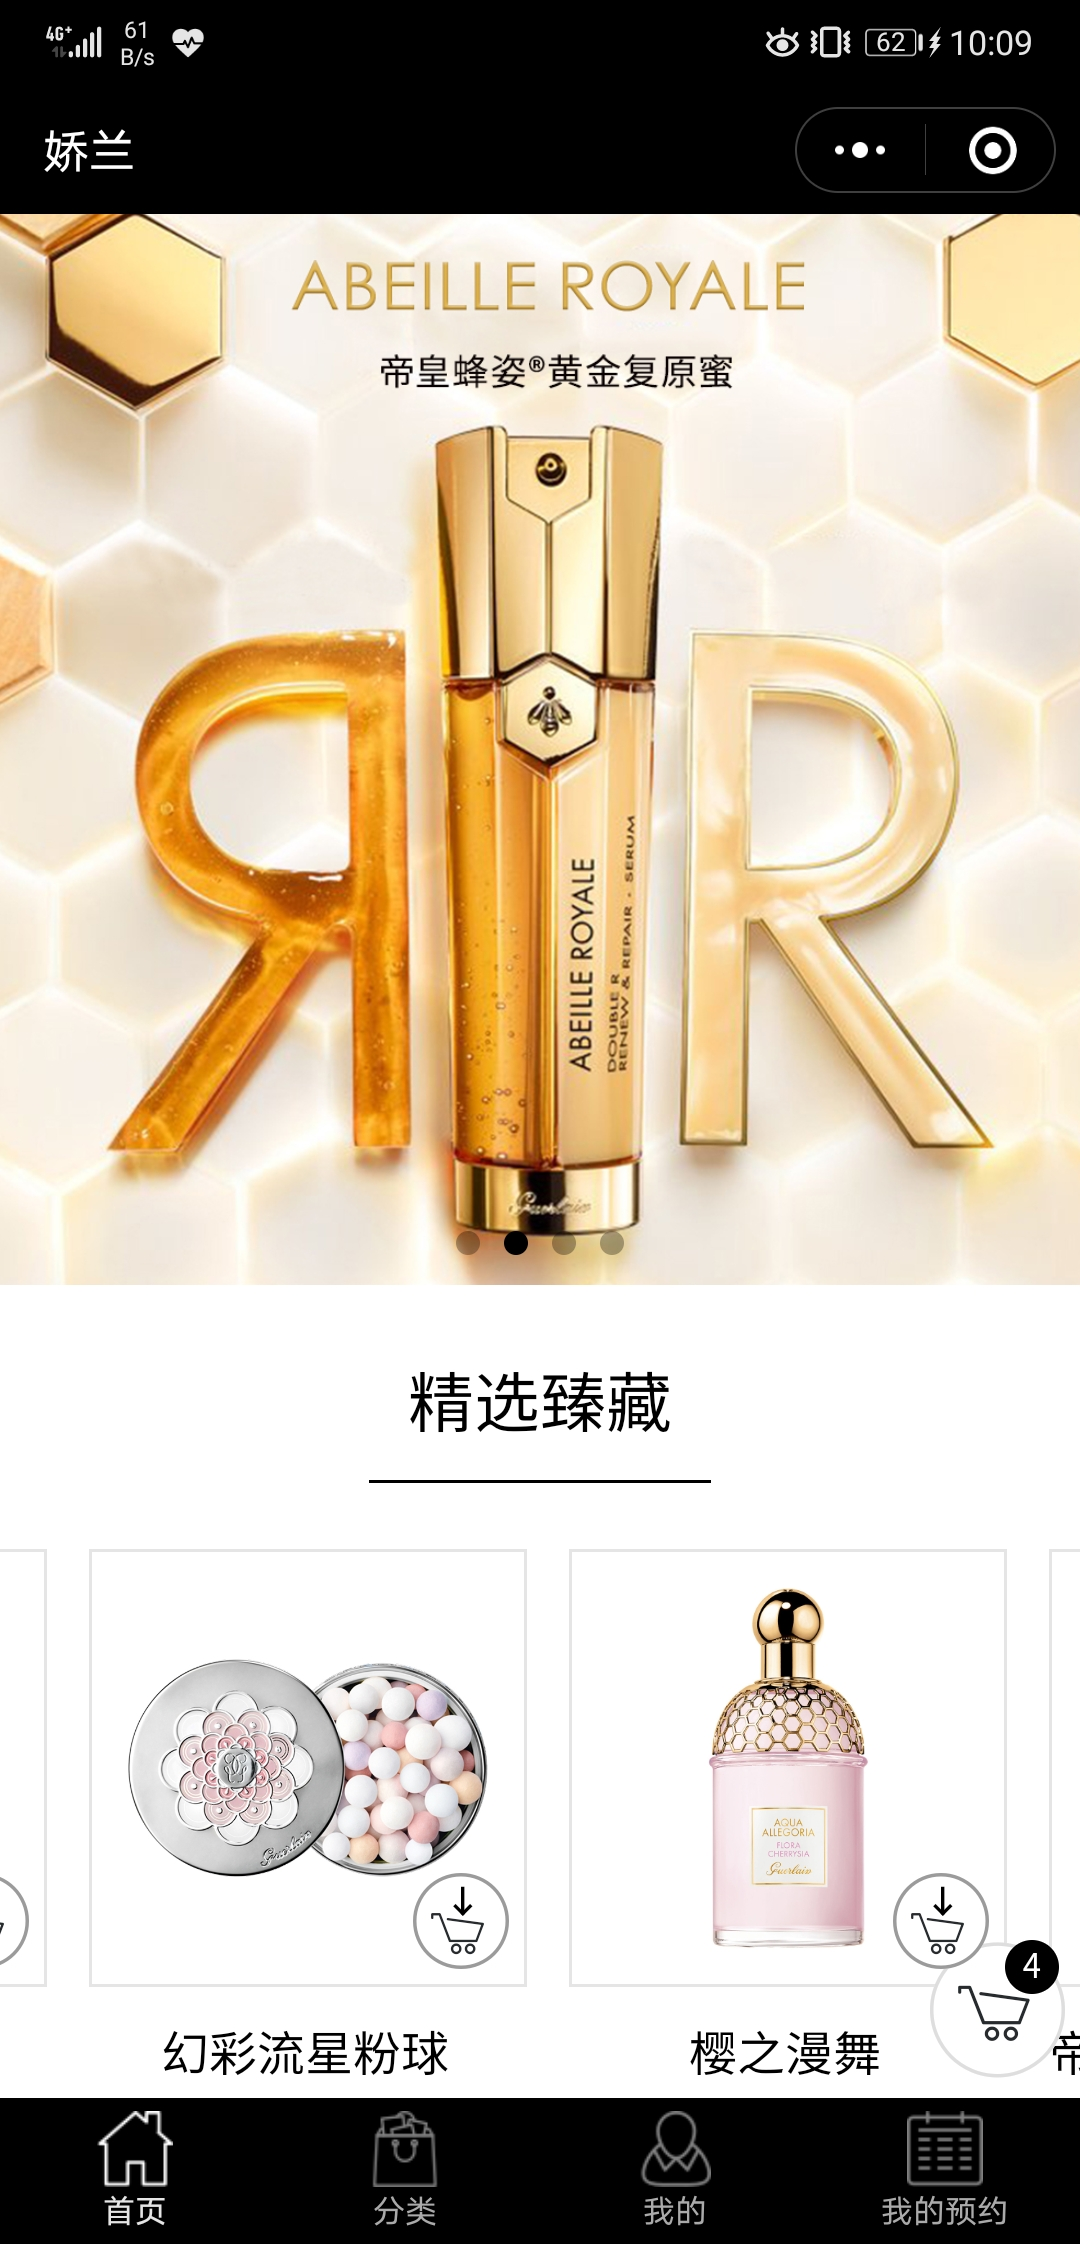 Guerlain Book&Collect WeChat mini-programme